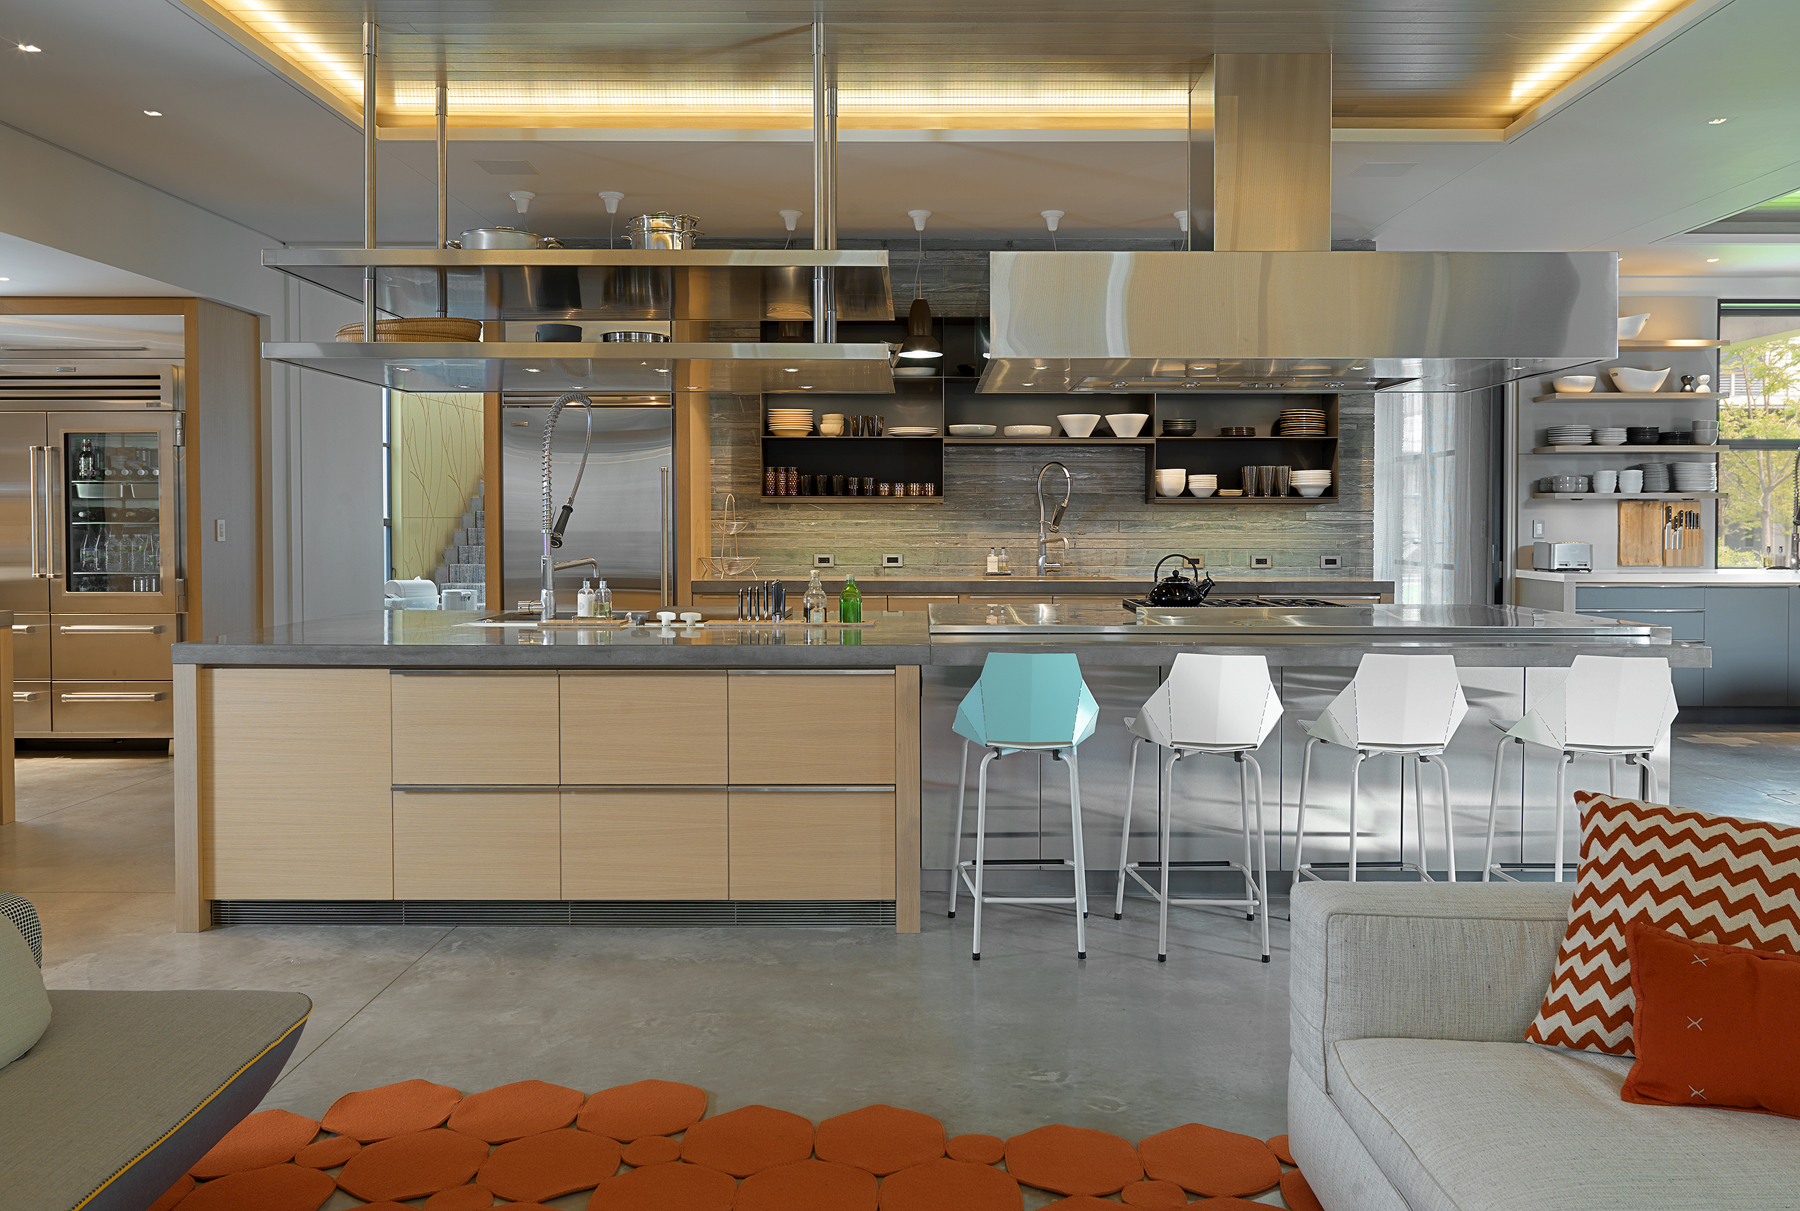 New England Sub-Zero and Wolf Kitchen Design Contest Winners ...